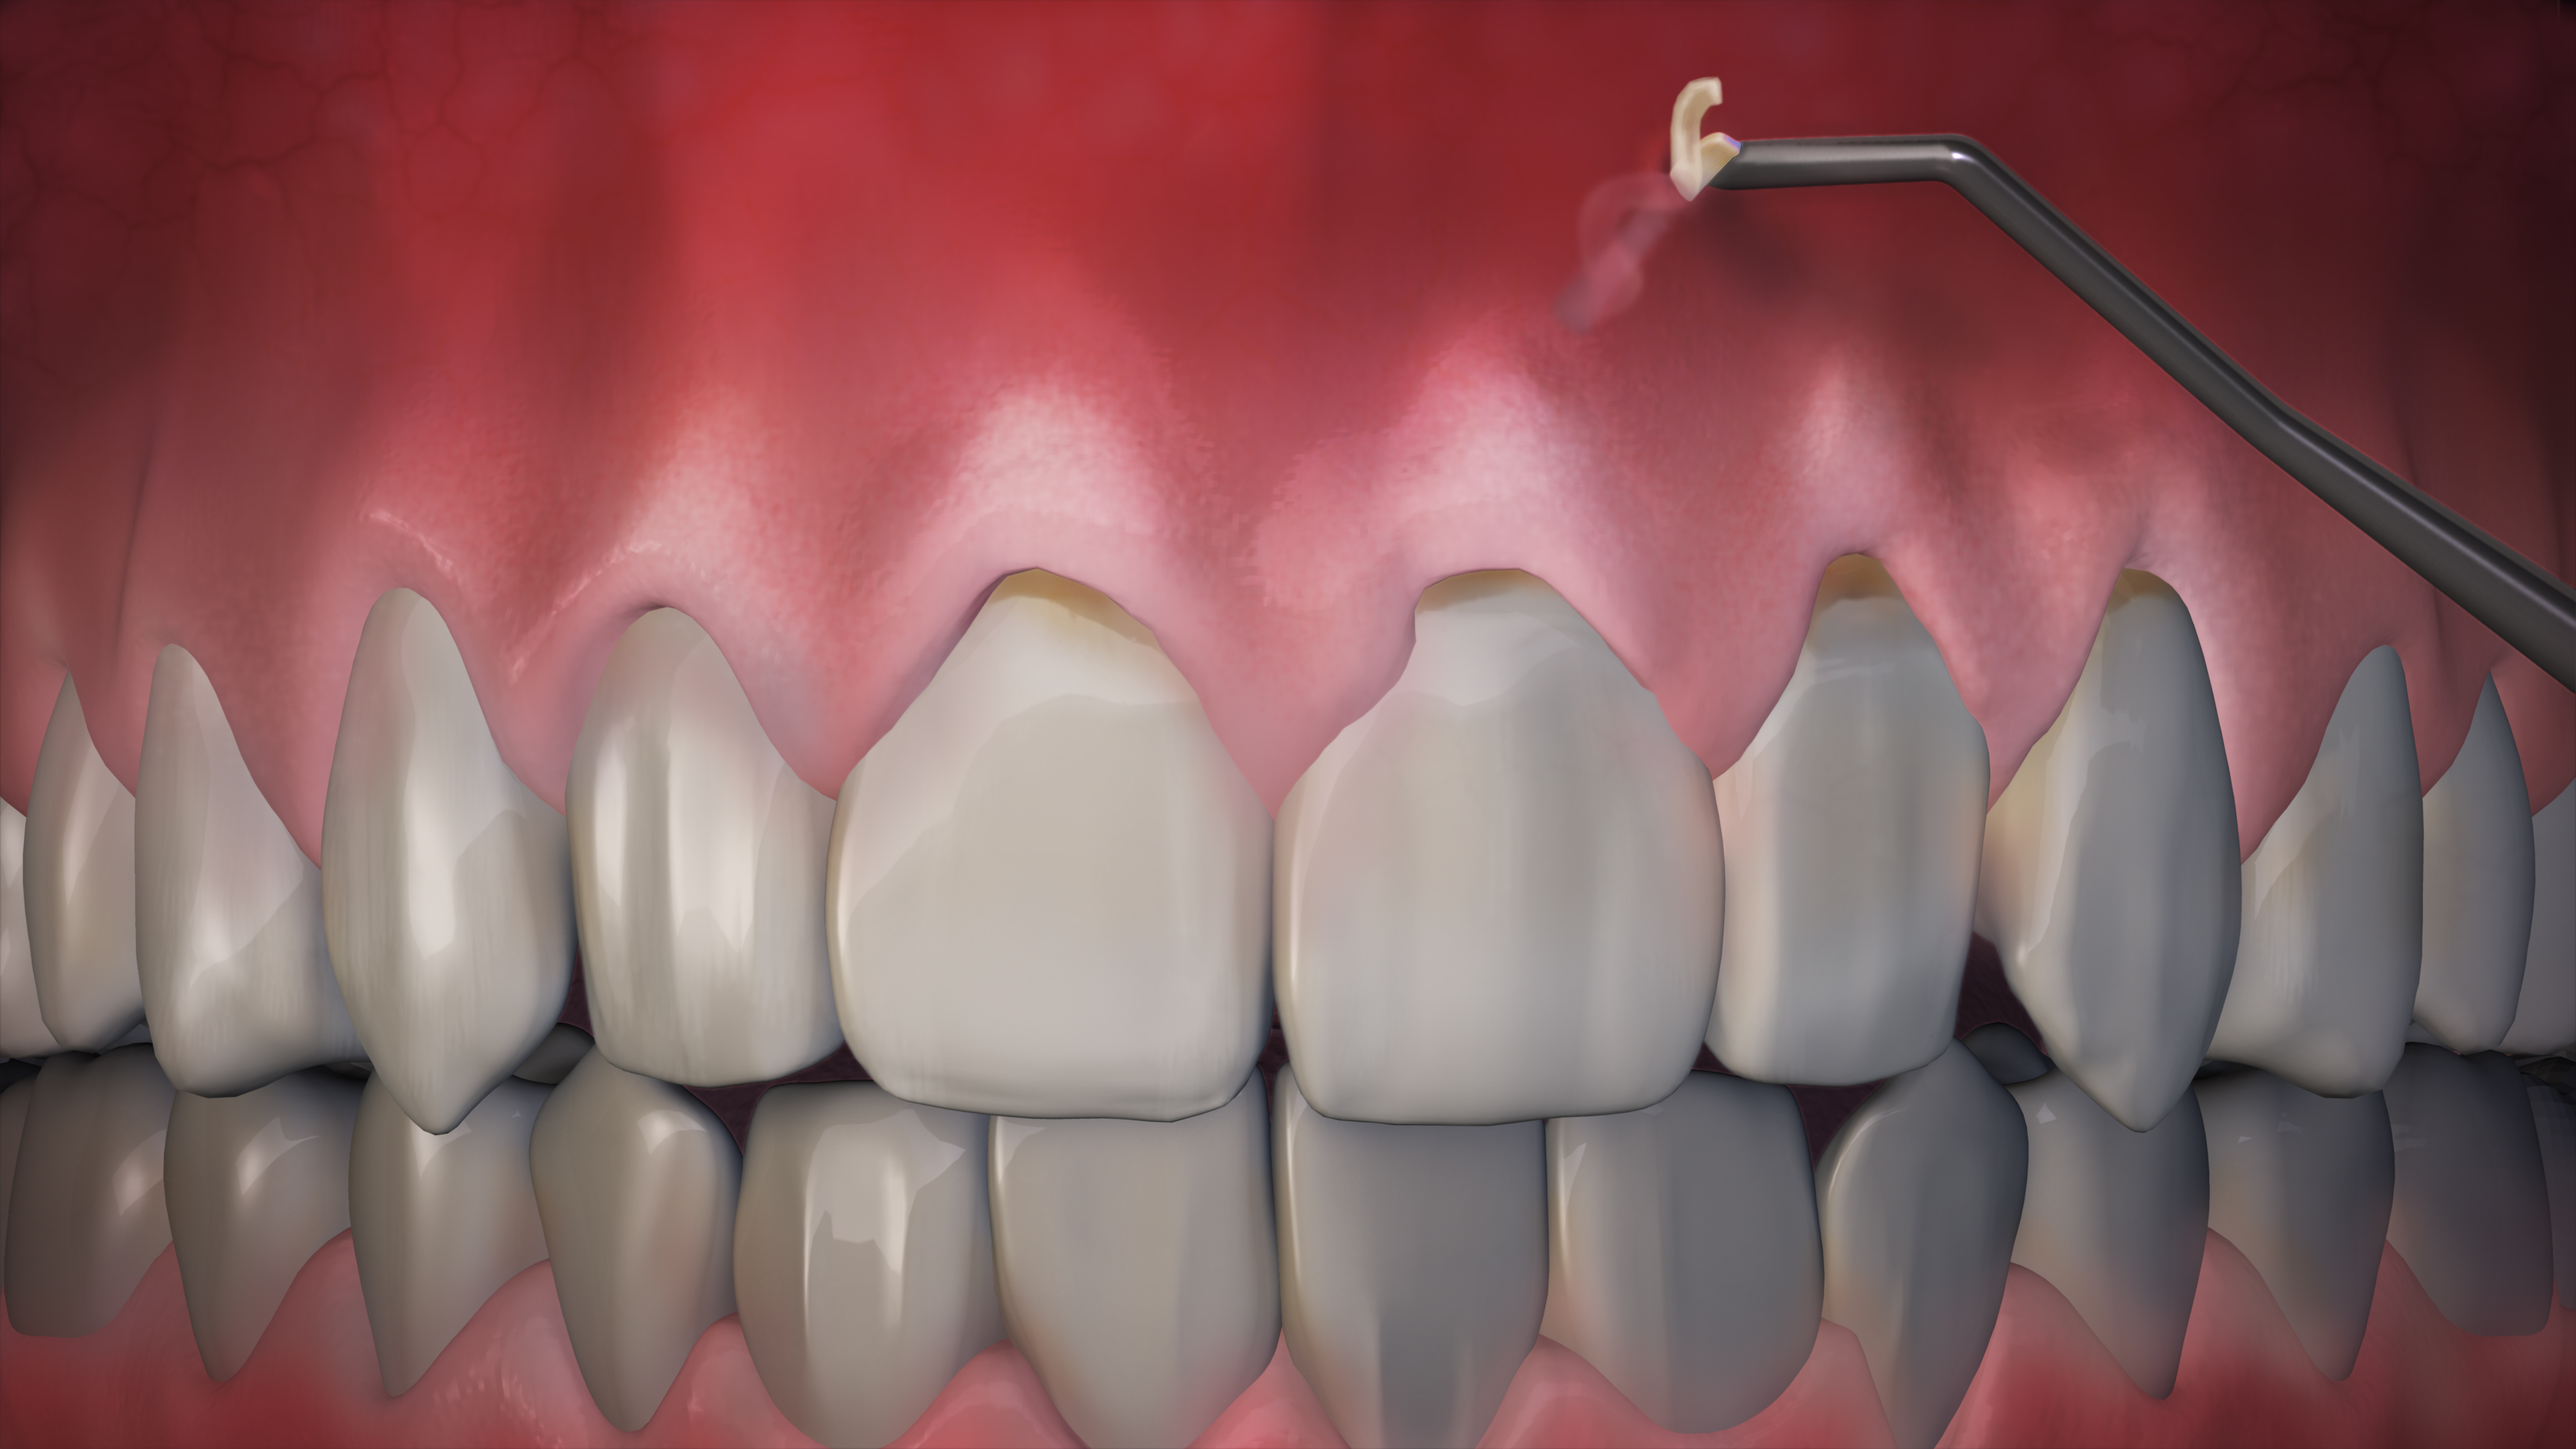 Collagen insterted into gums to hold into place and promote healing.